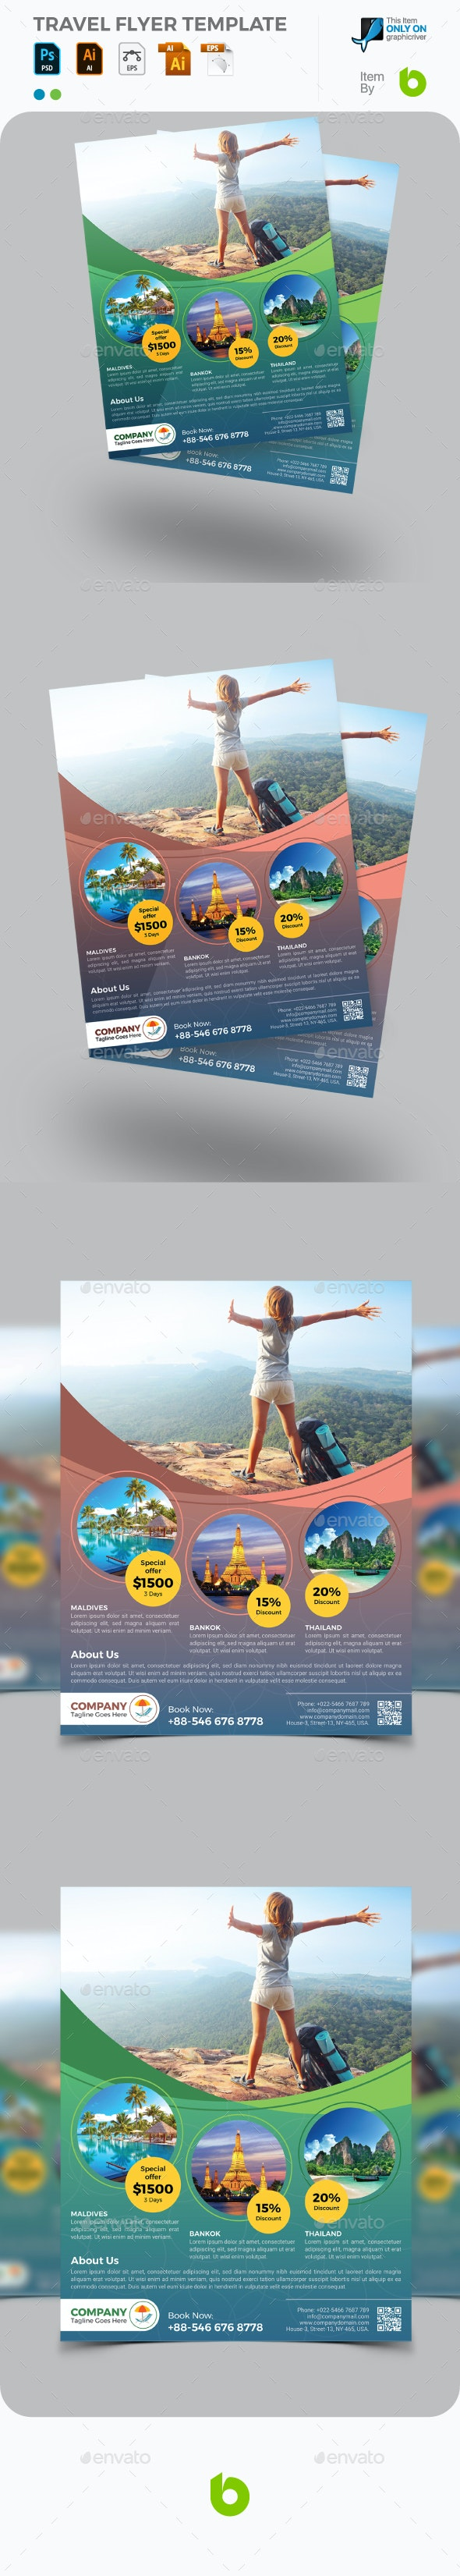 Travel Flyer Template - Calendars Stationery